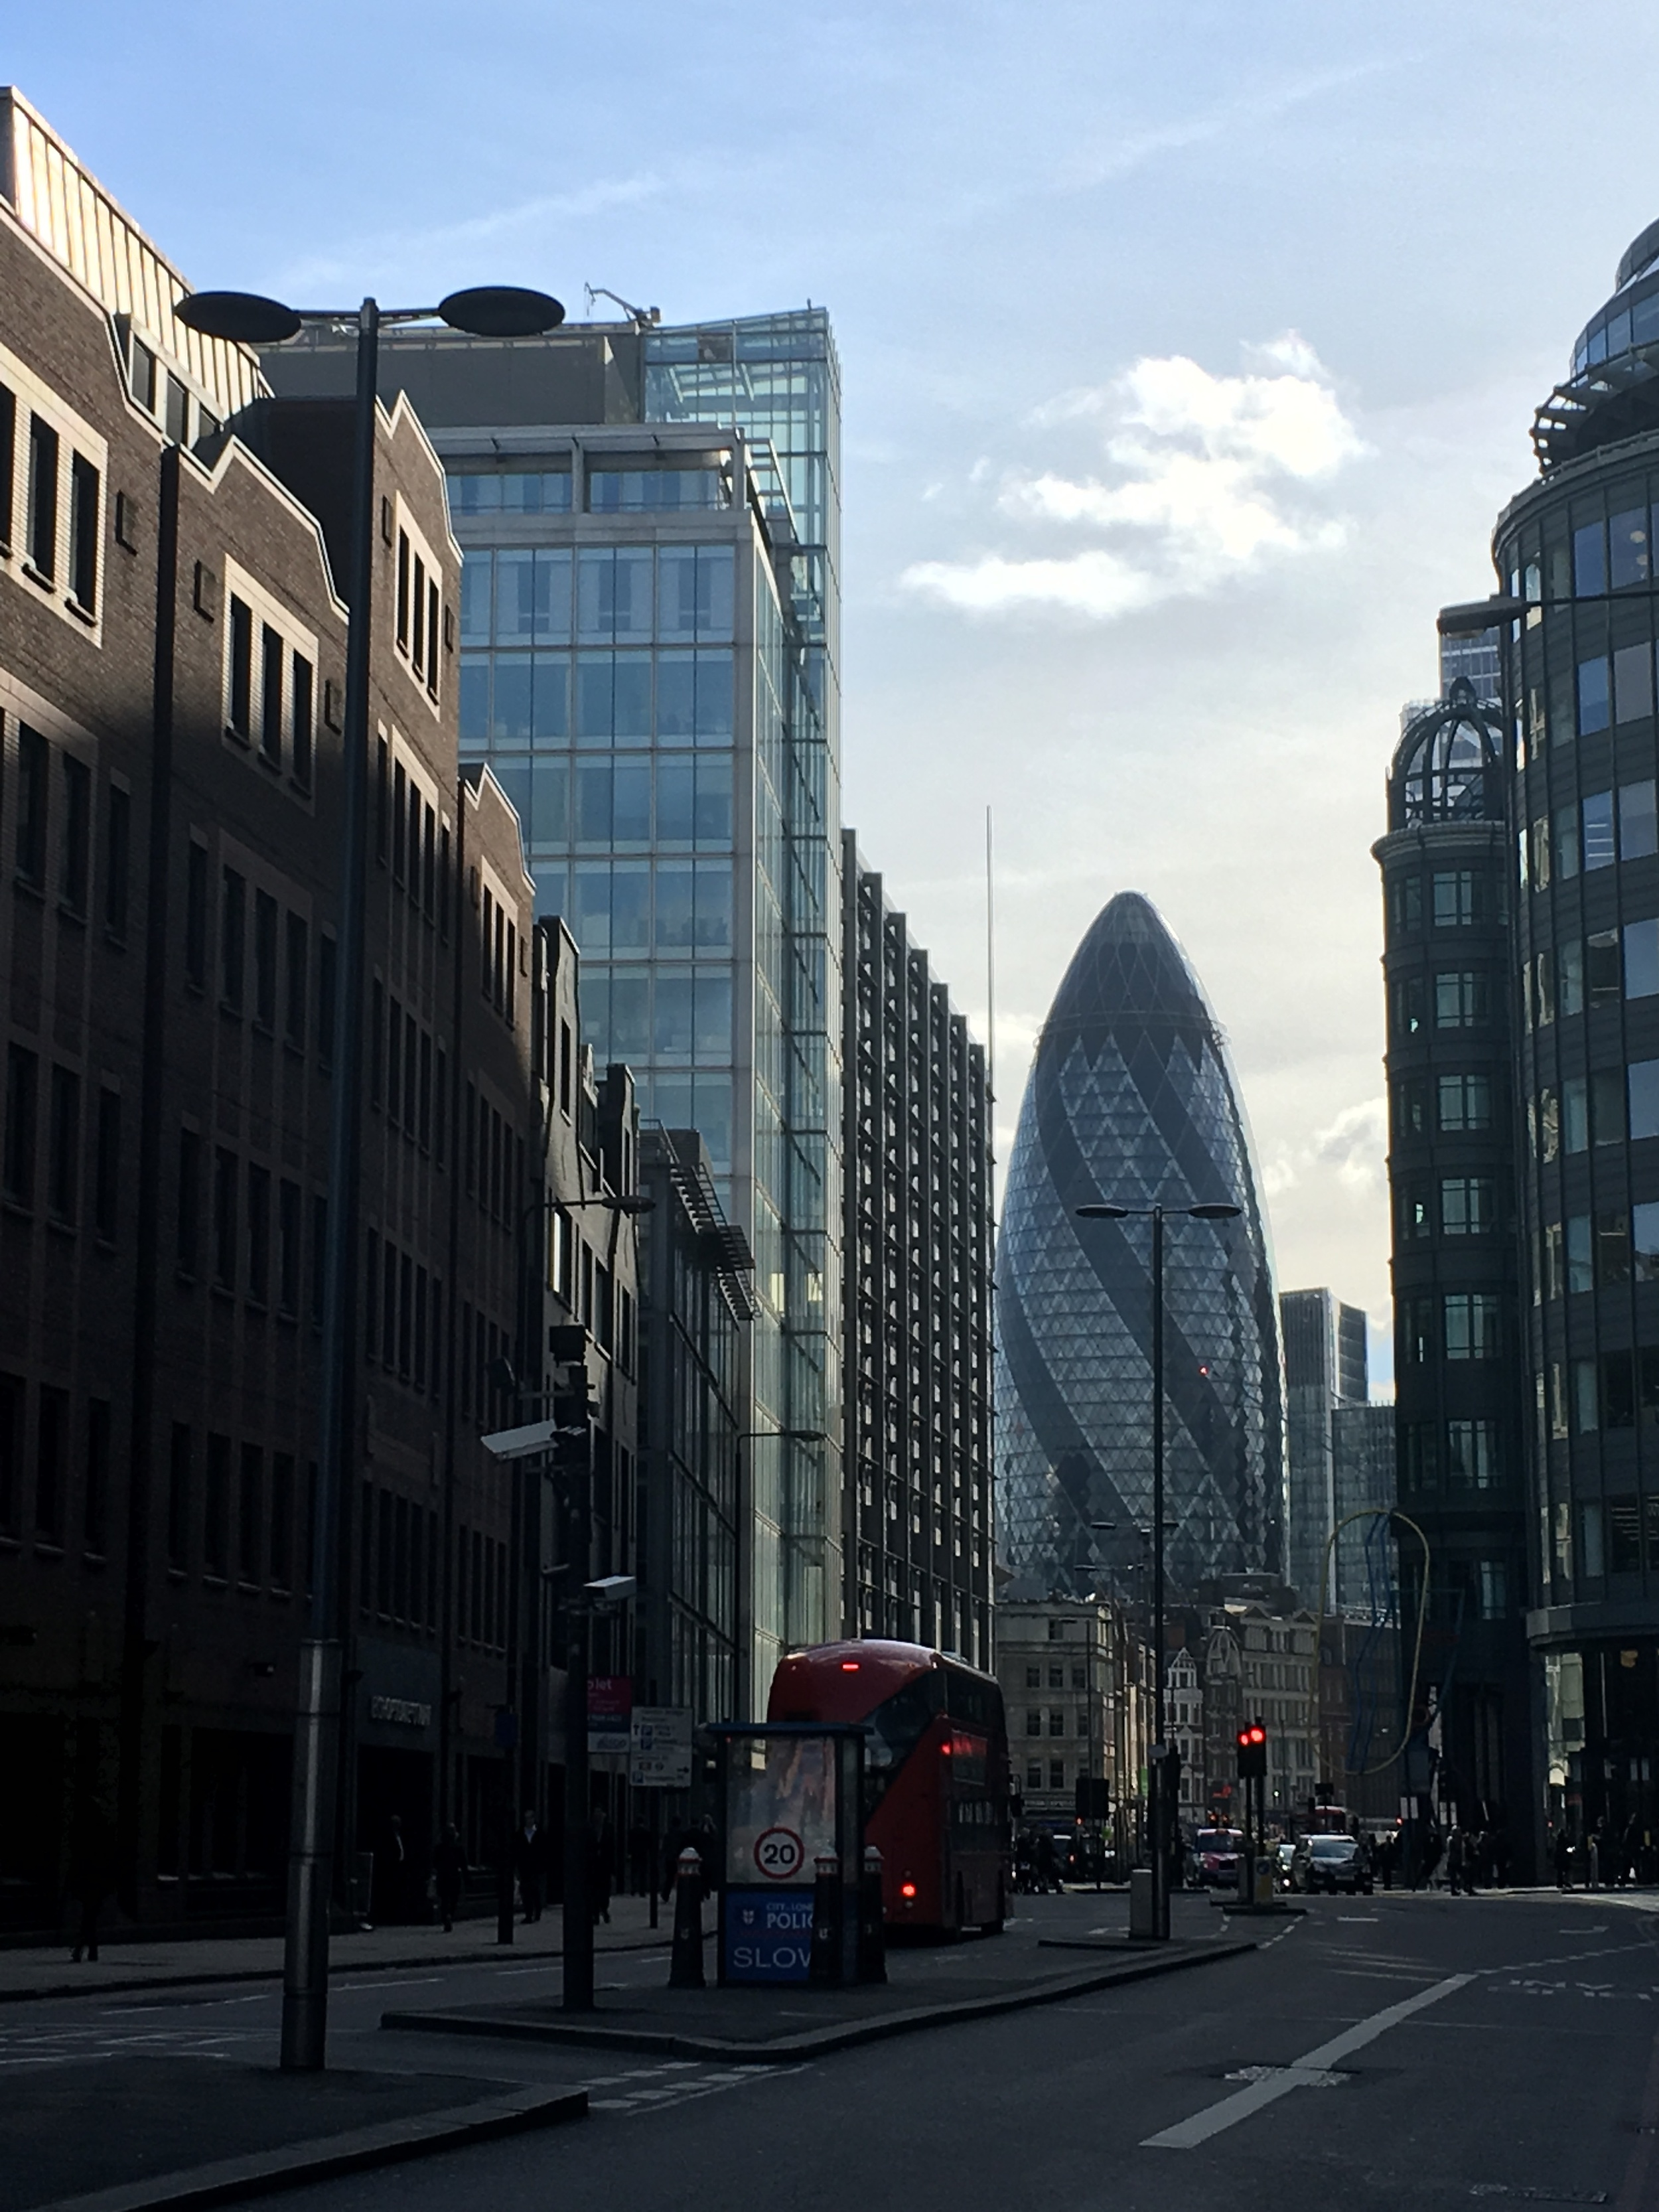 30 St. Mary Axe in the City of London.